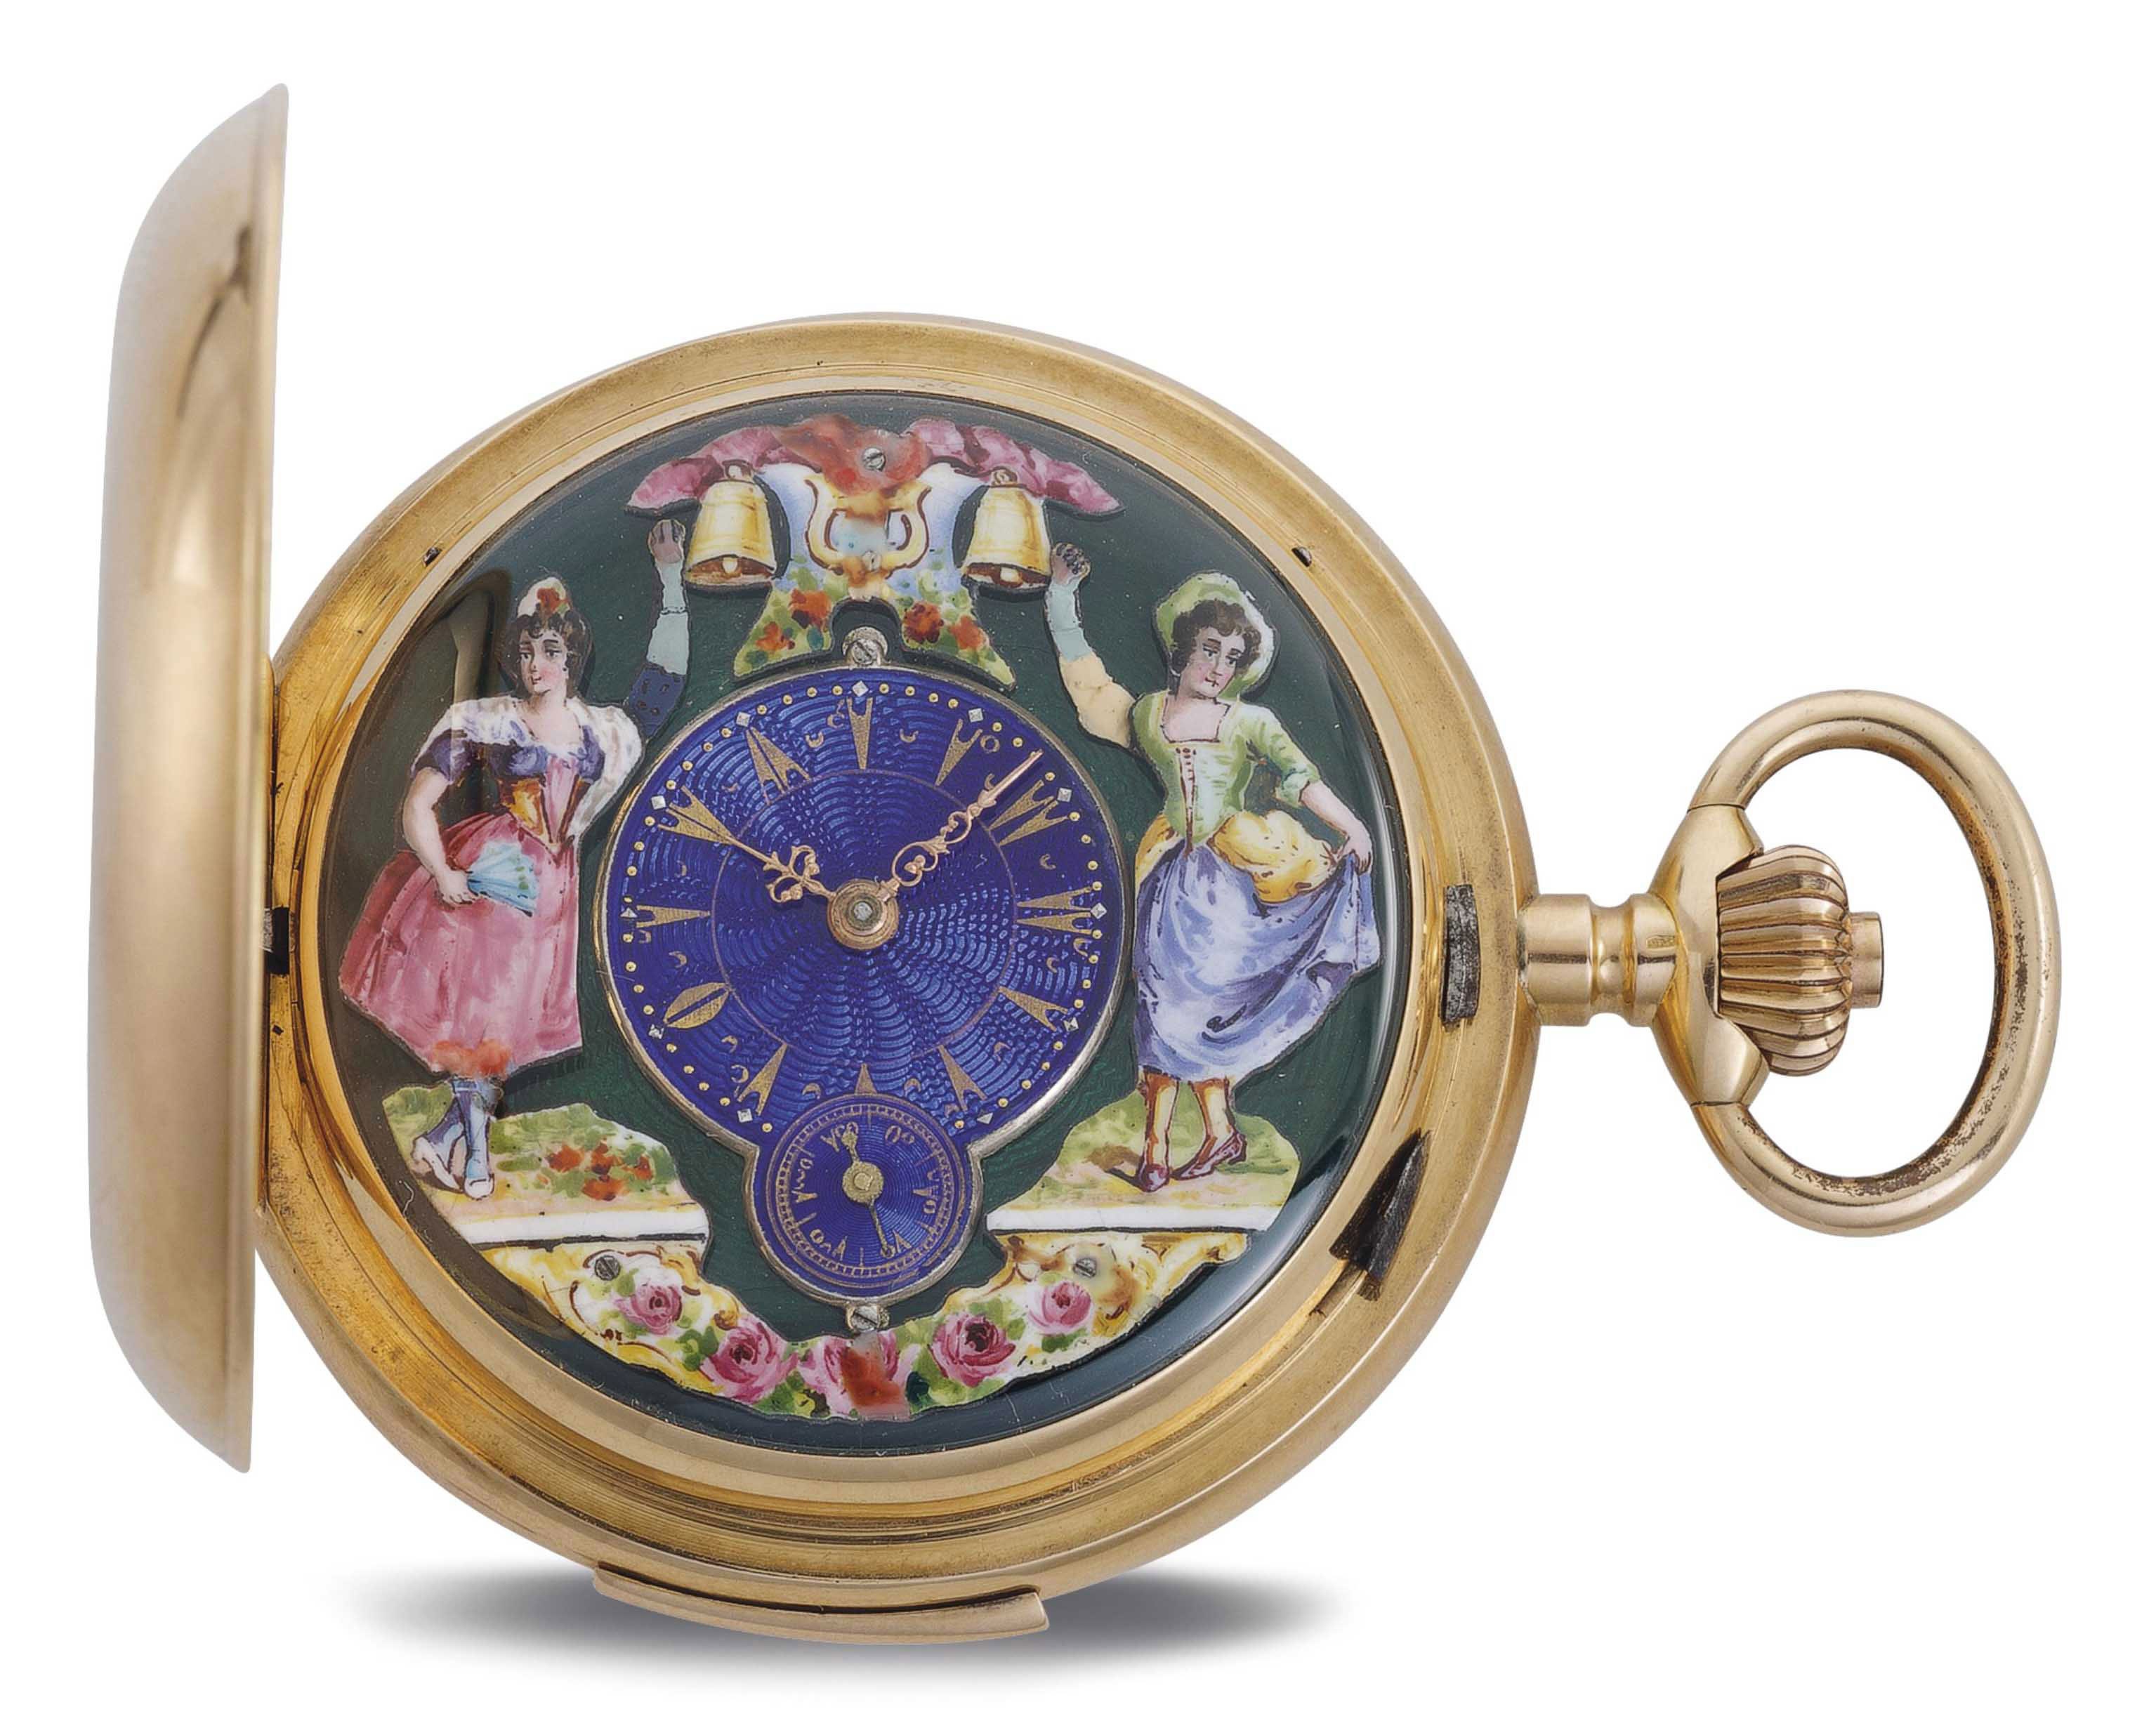 INVICTA. A RARE 18K PINK GOLD HUNTER CASE MINUTE REPEATING KEYLESS LEVER POCKET WATCH WITH JACQUEMARTS MADE FOR THE TURKISH MARKET